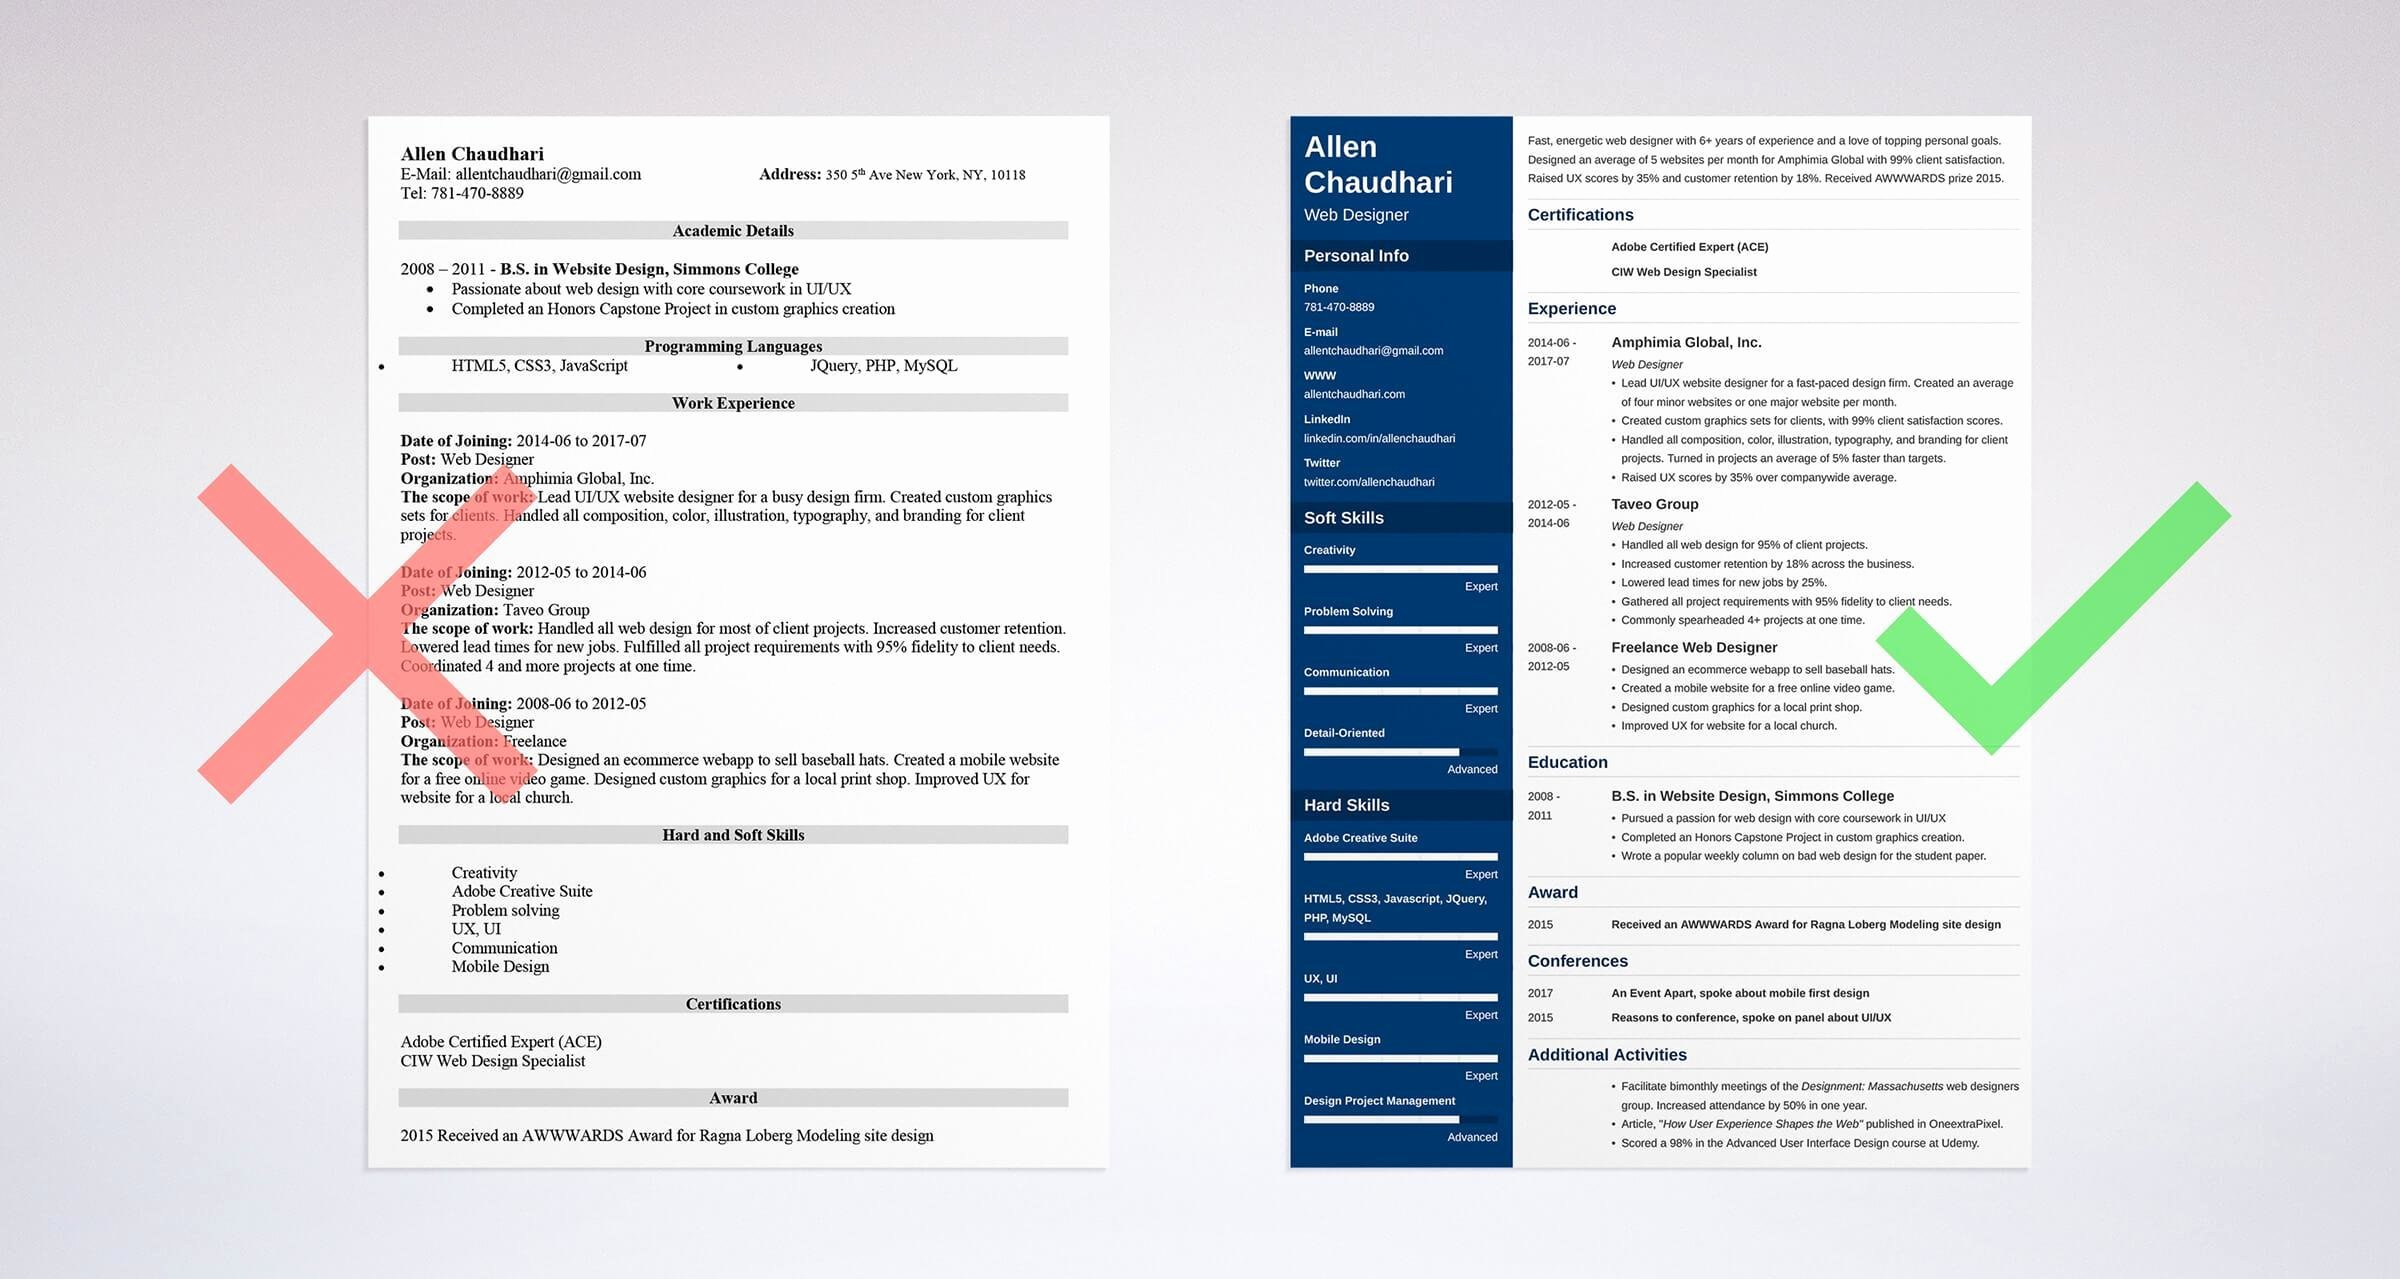 Web Designer Resume Template New Web Designer Resume Sample and Plete Guide [ 20 Examples]